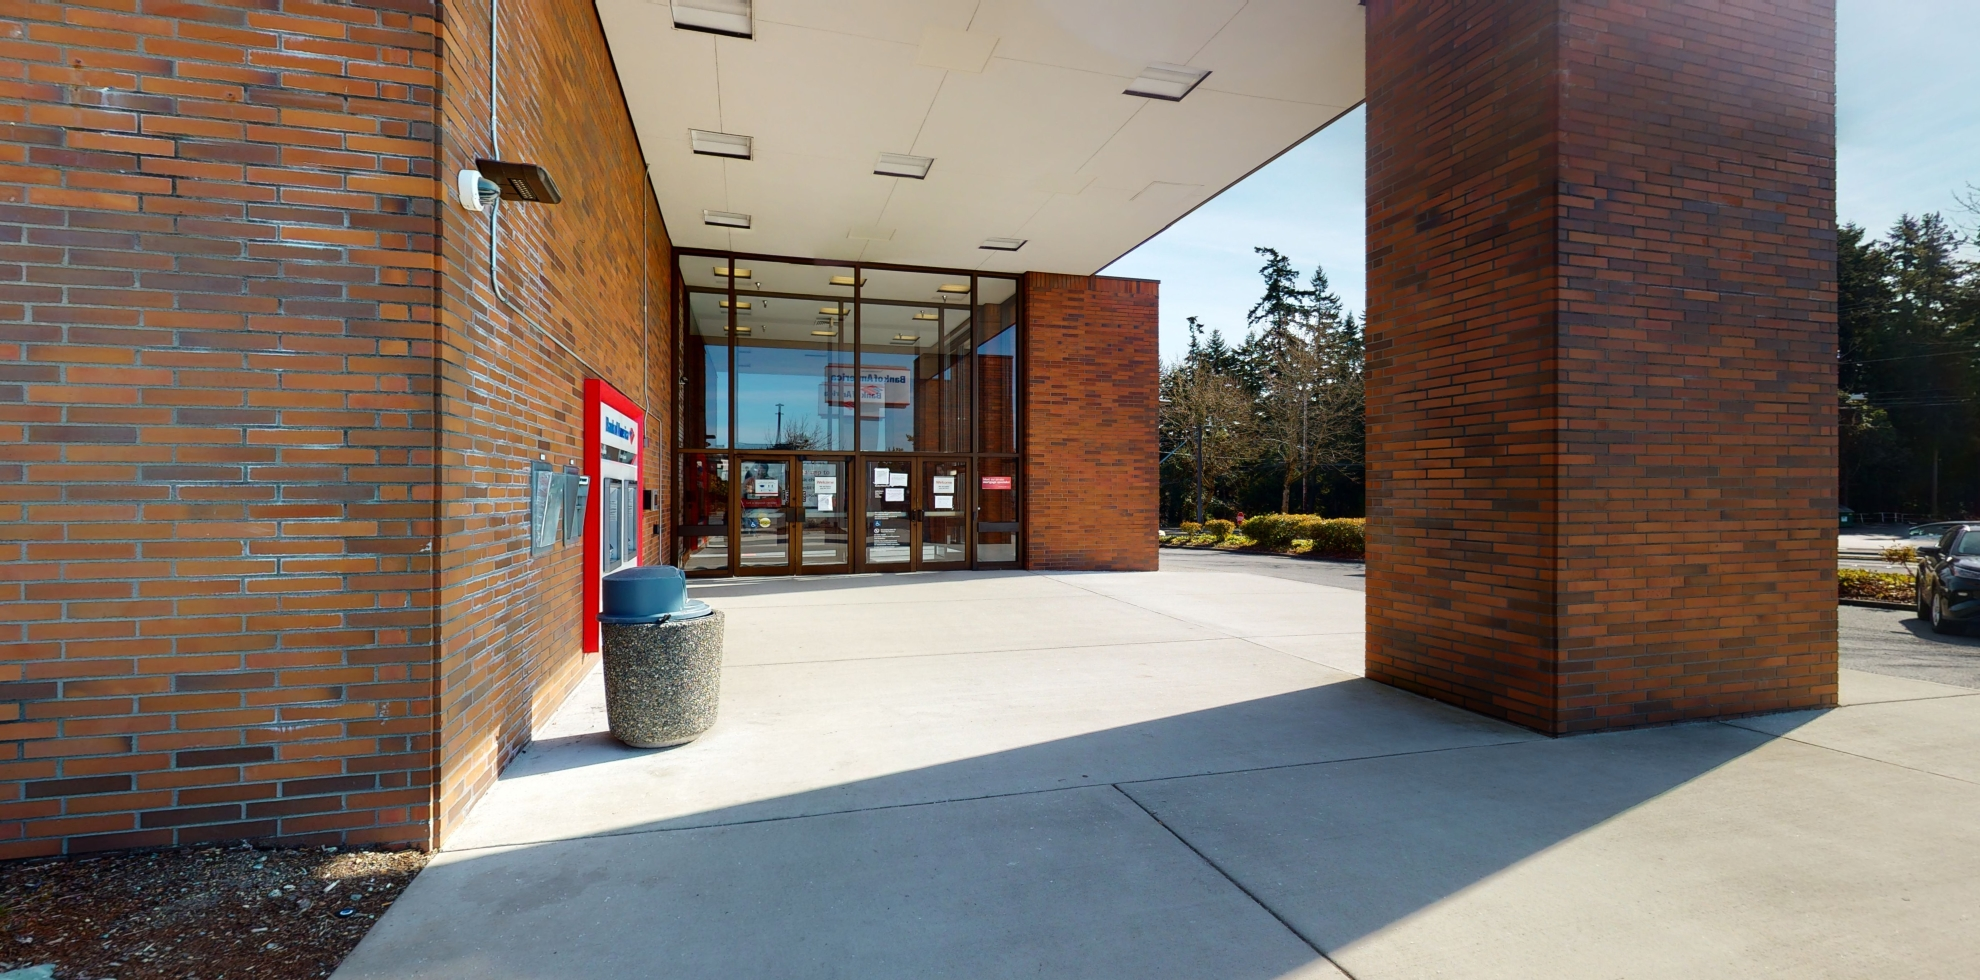 Bank of America financial center with drive-thru ATM   5727 196th St SW, Lynnwood, WA 98036